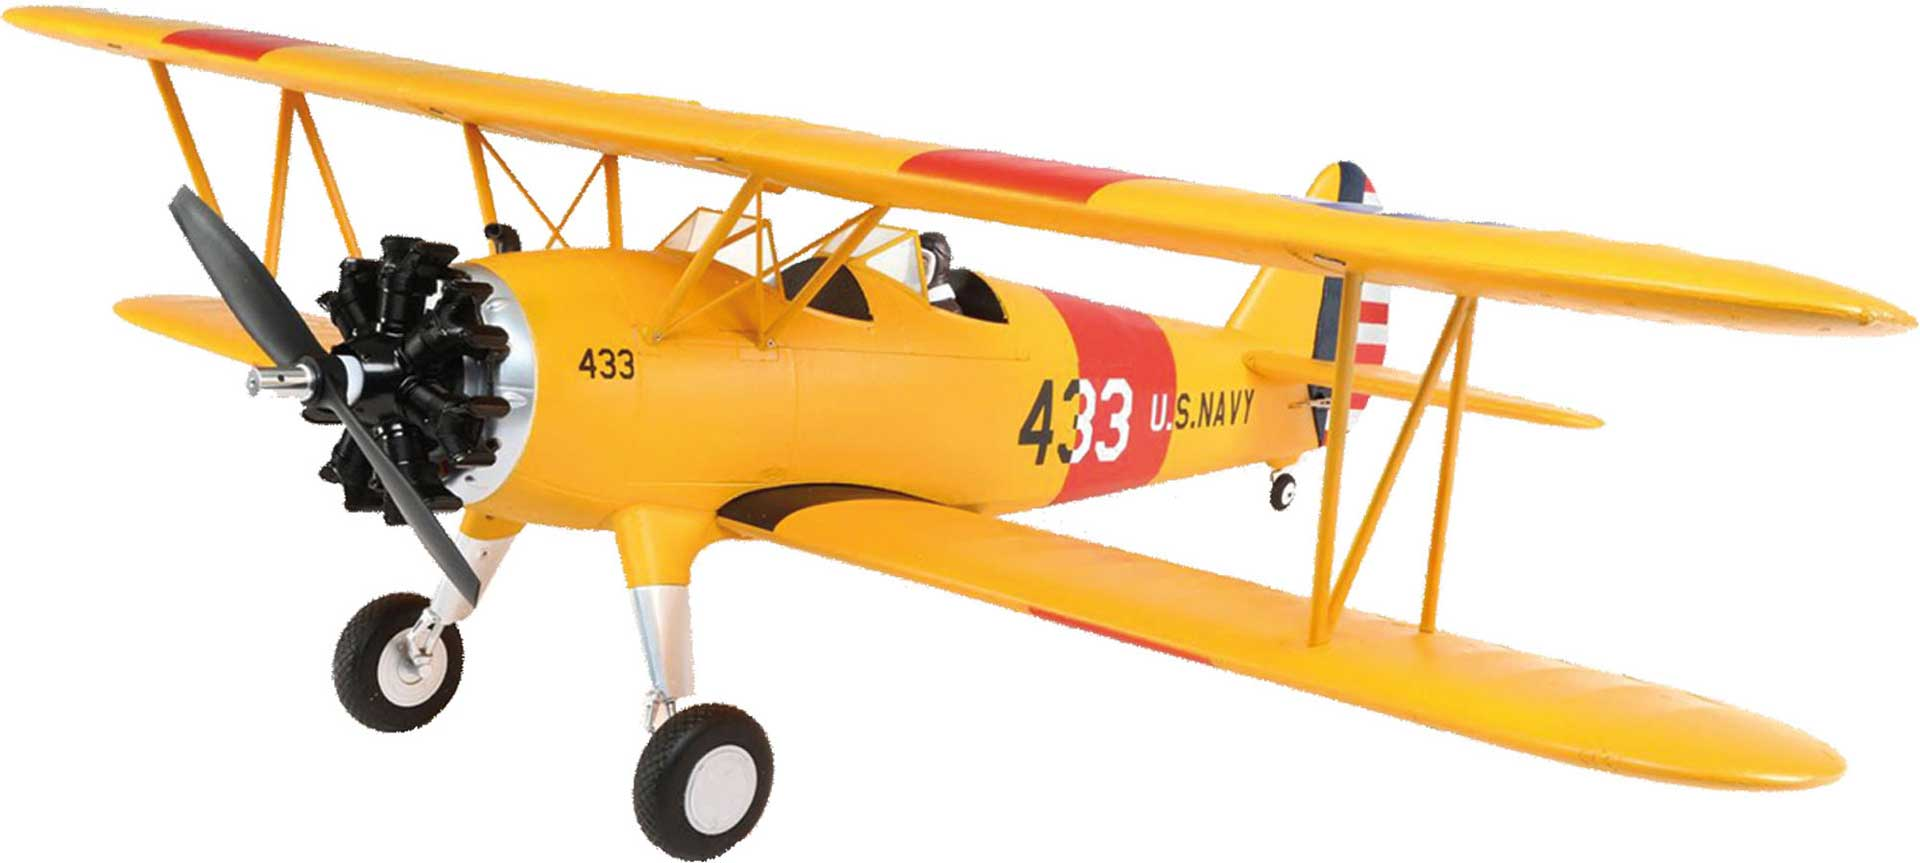 E-Flite PT-17 1,1M BNF BASIC DOUBLE DECKER WITH AS3X AND PTIONALER SAFE® SELECT TECHNOLOGY